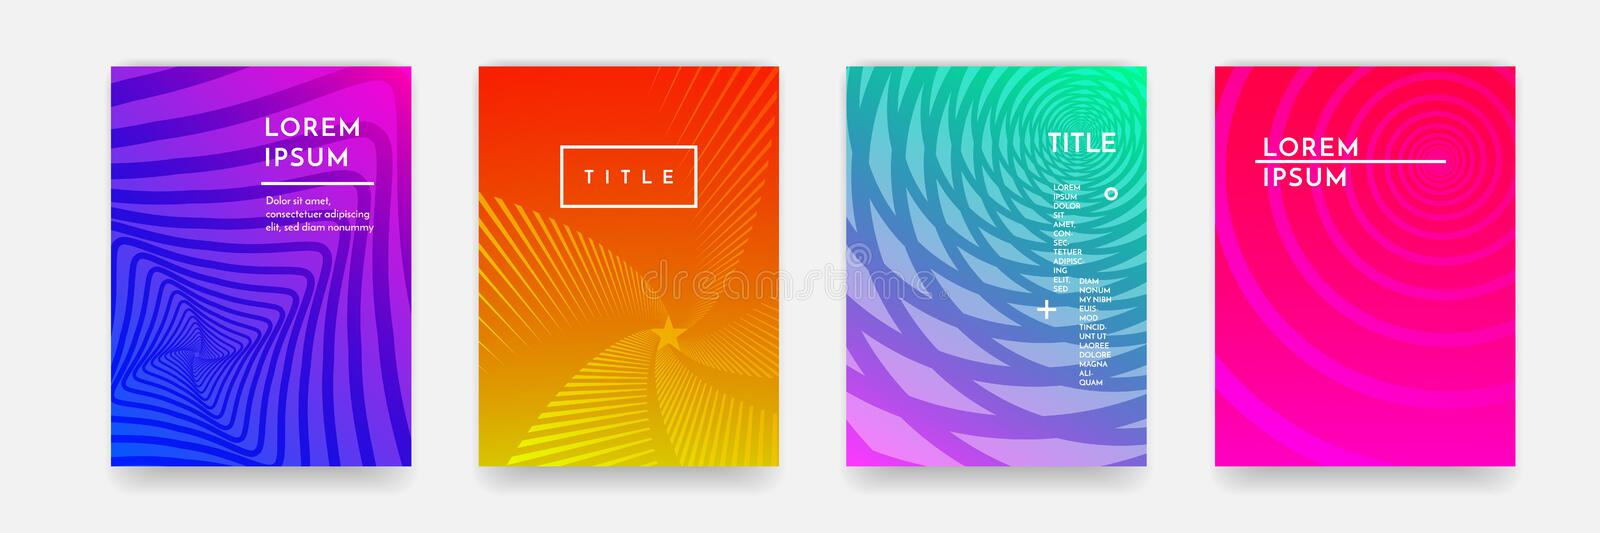 Color gradient abstract geometric pattern texture for book cover template vector set royalty free illustration